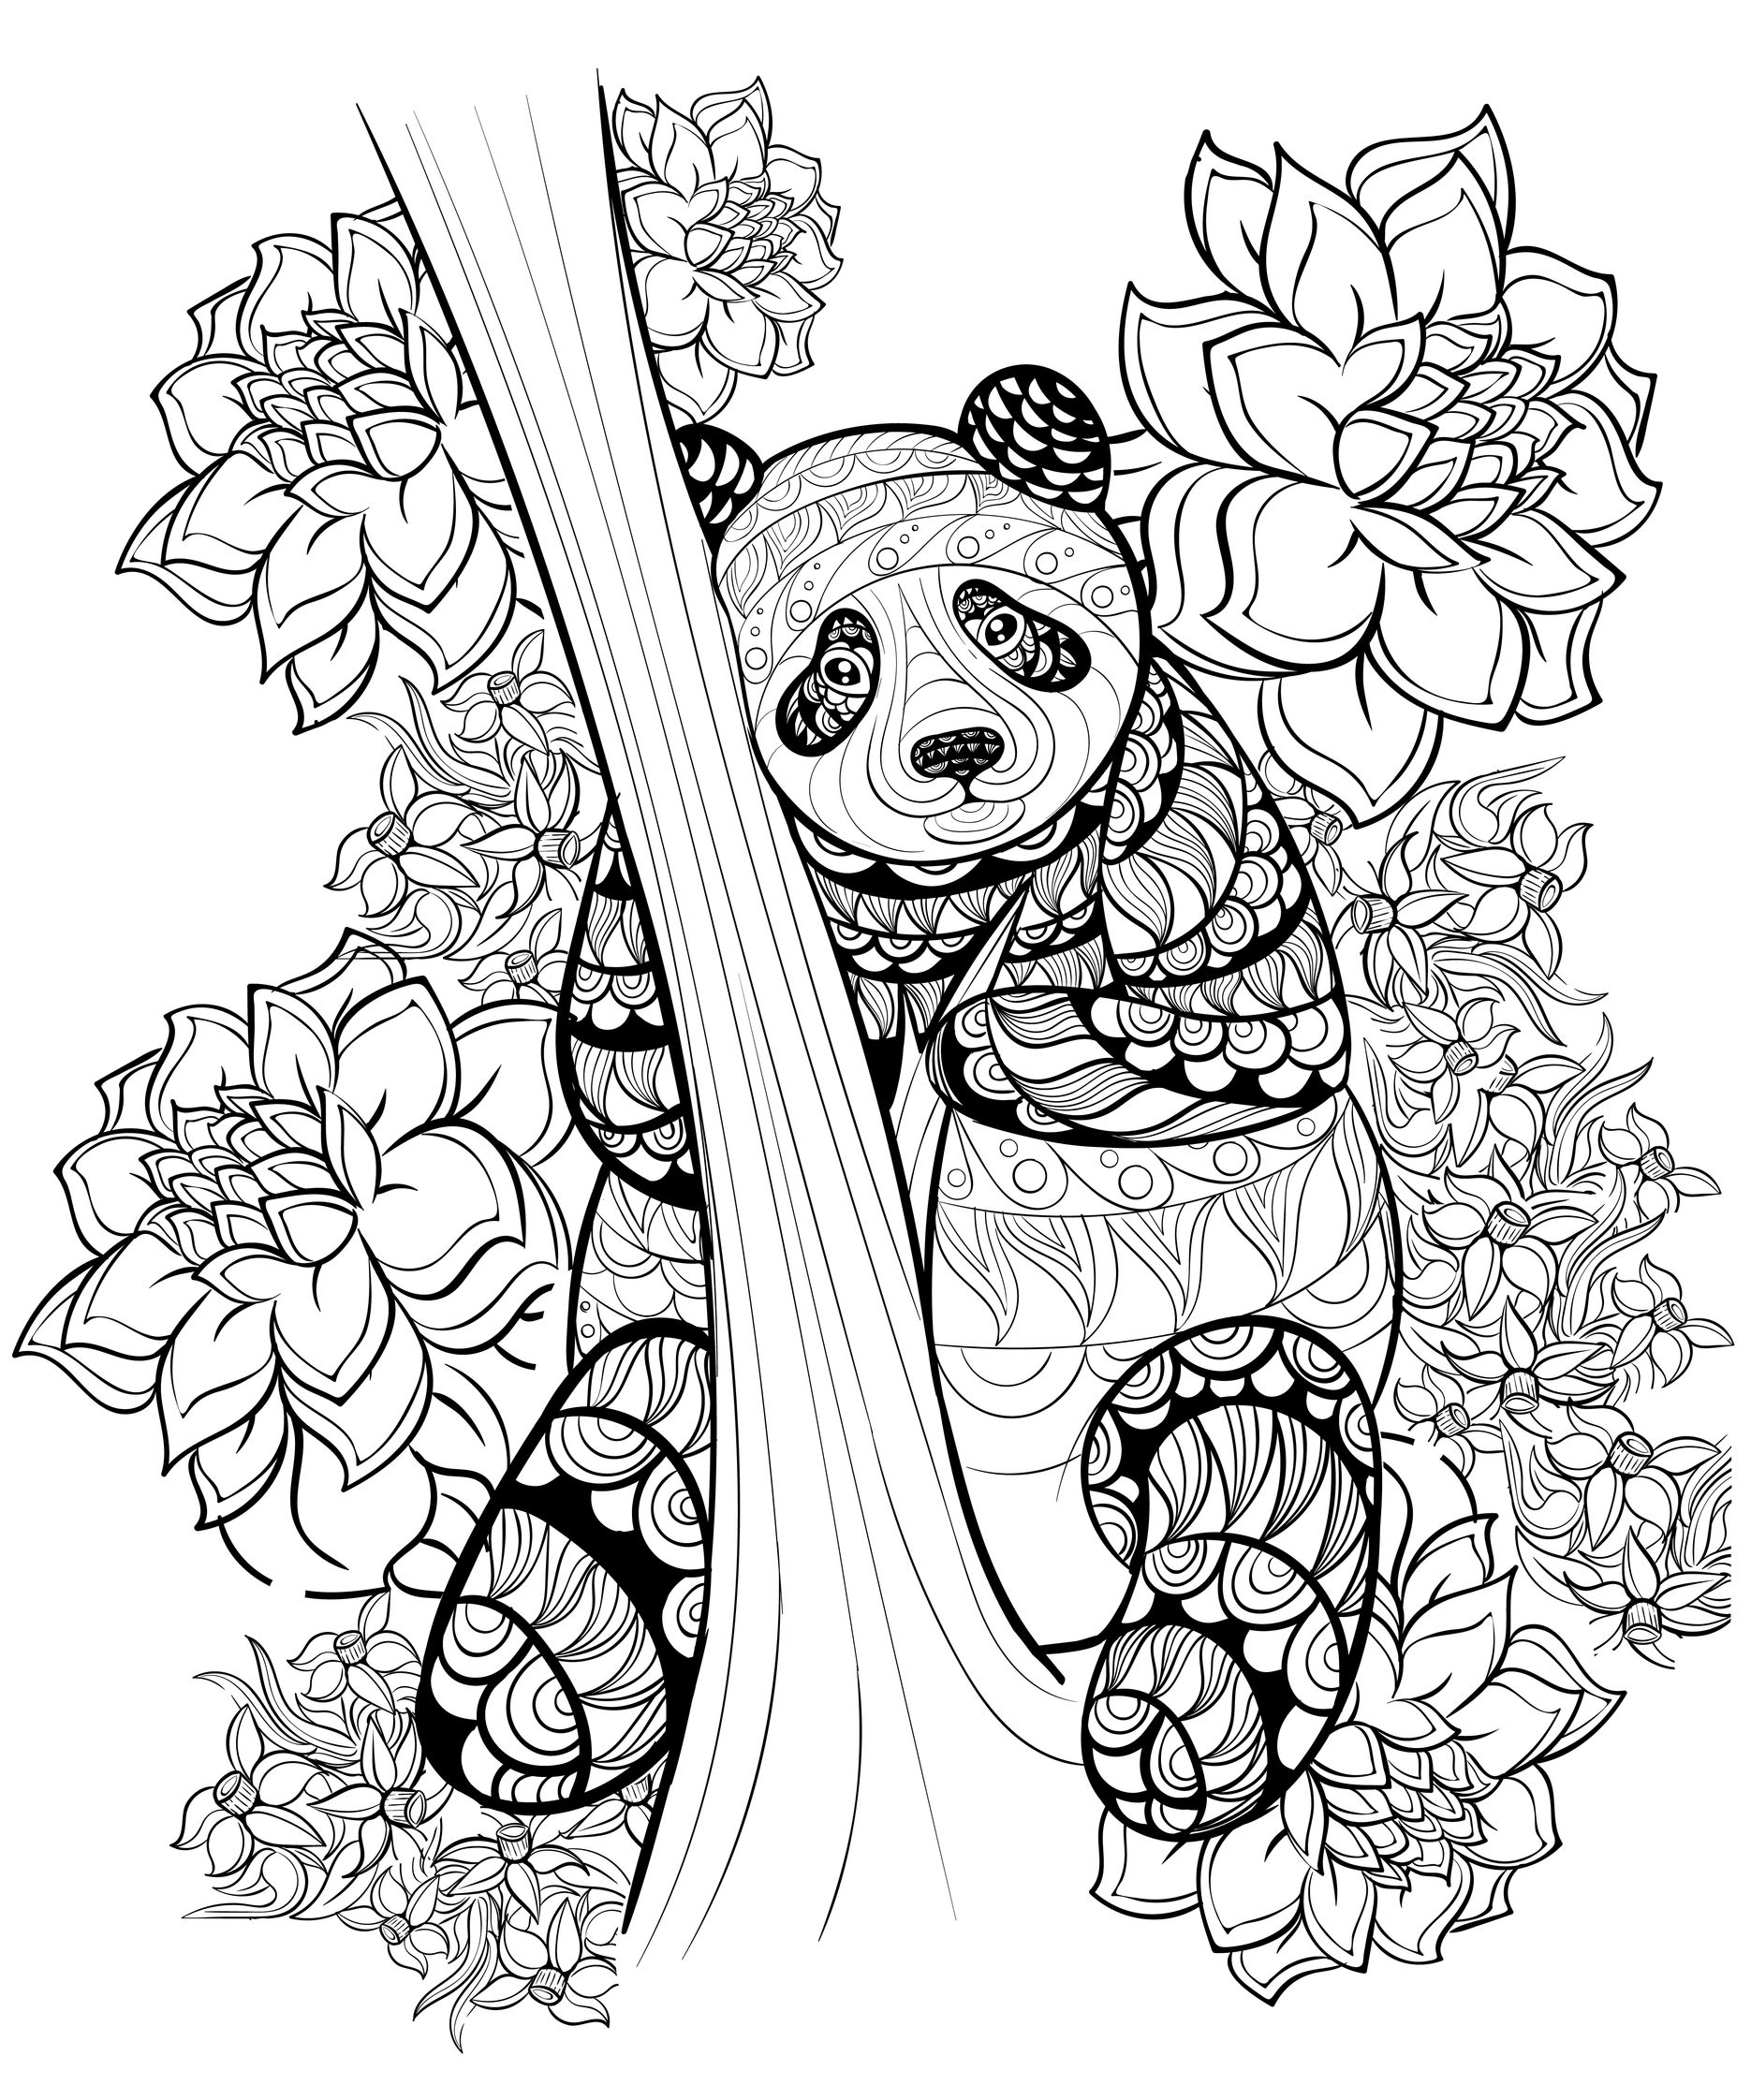 hand drawn ink pattern of a panda from the gallery animals - Color Pages For Adults